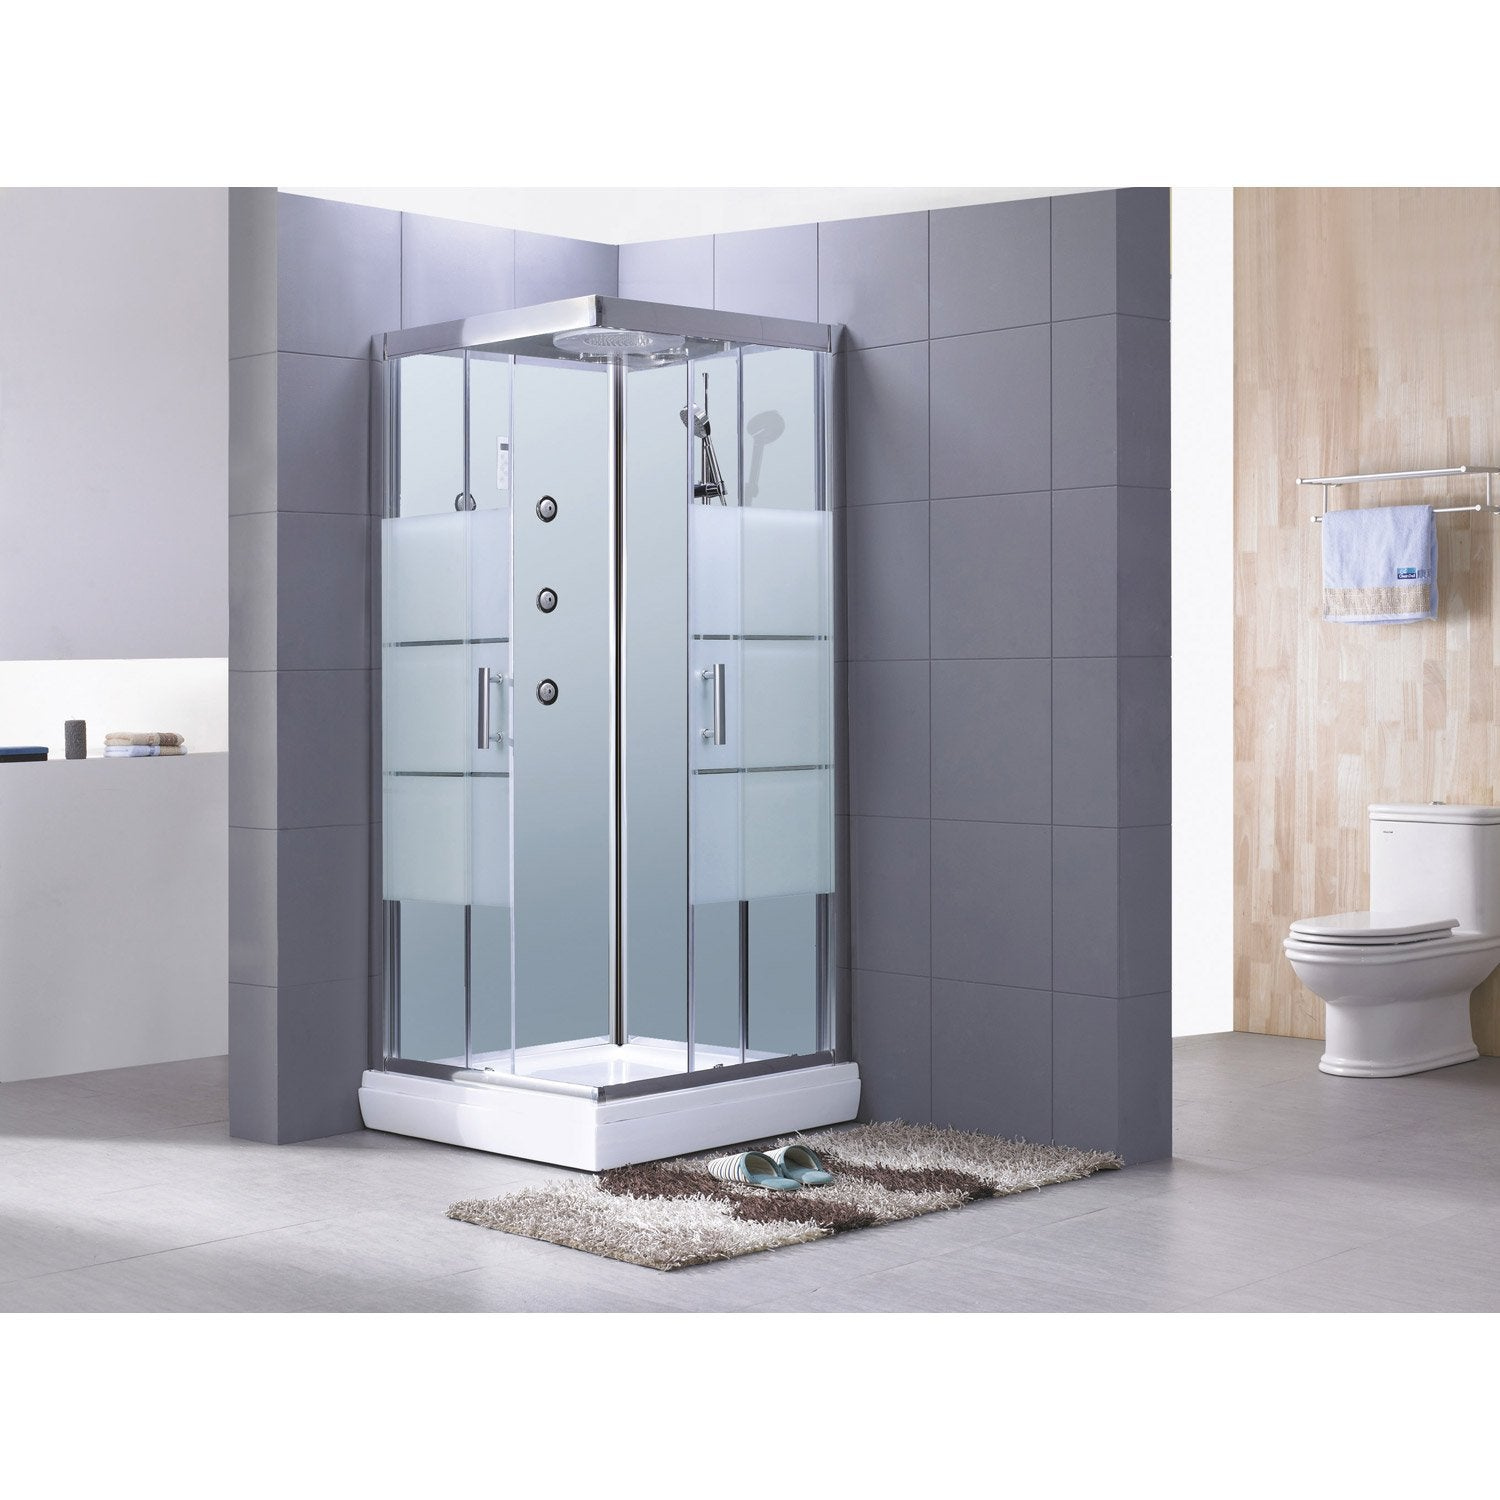 Cabine de douche carr 80x80 cm optima2 blanche leroy for Cabine de douche kinemagic